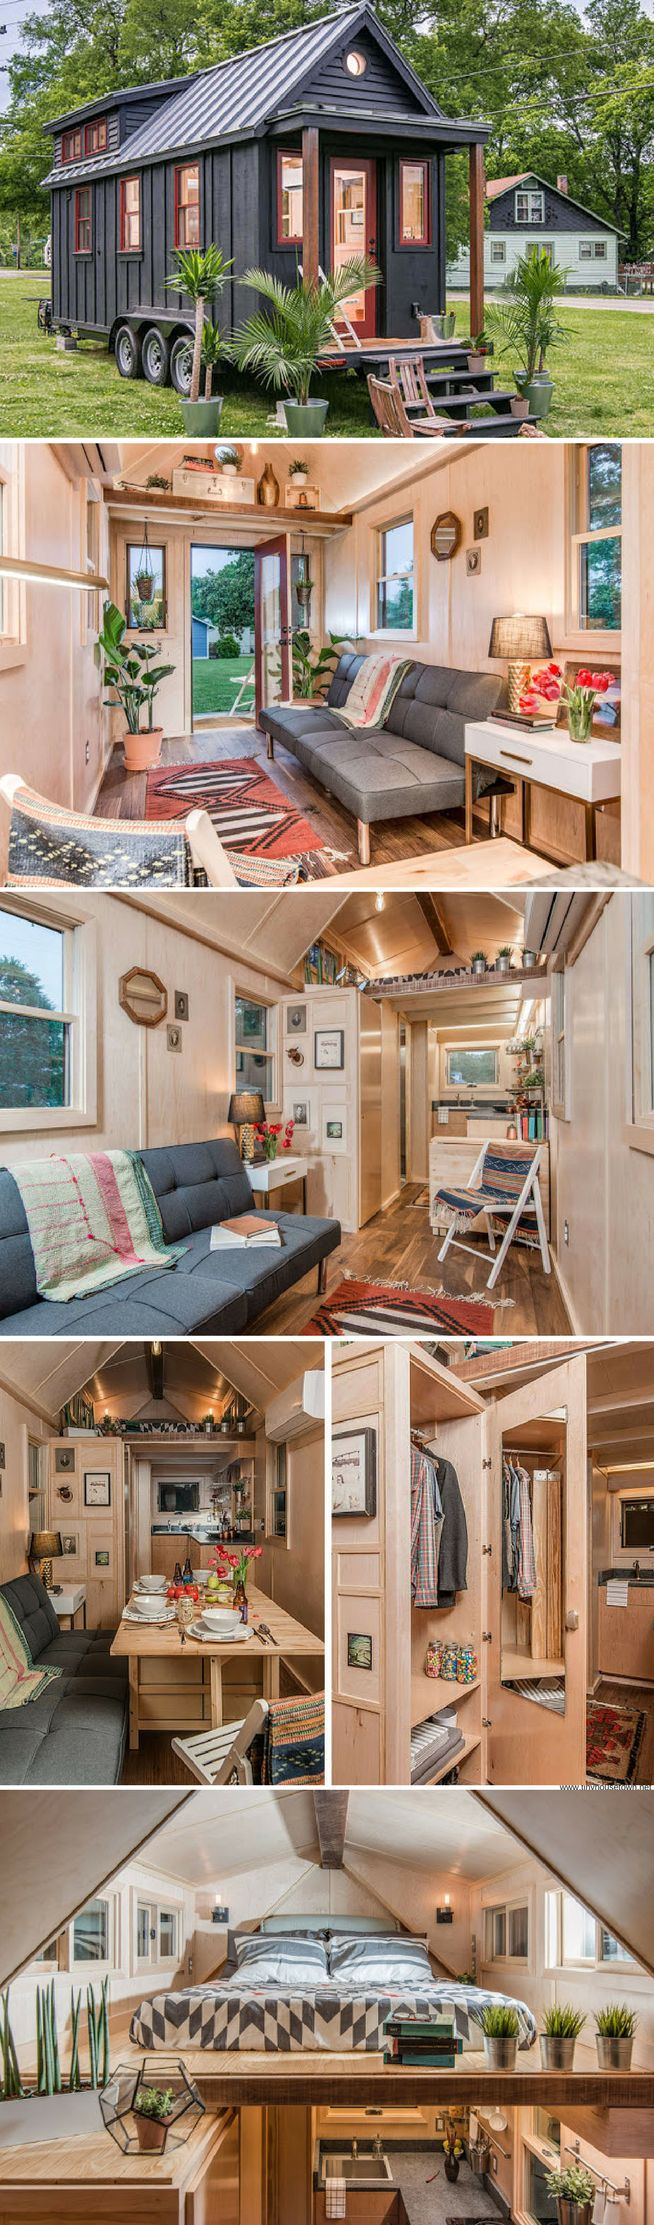 Tiny Home Interior Prepossessing Best 25 Tiny Homes Interior Ideas On Pinterest  Tiny Houses